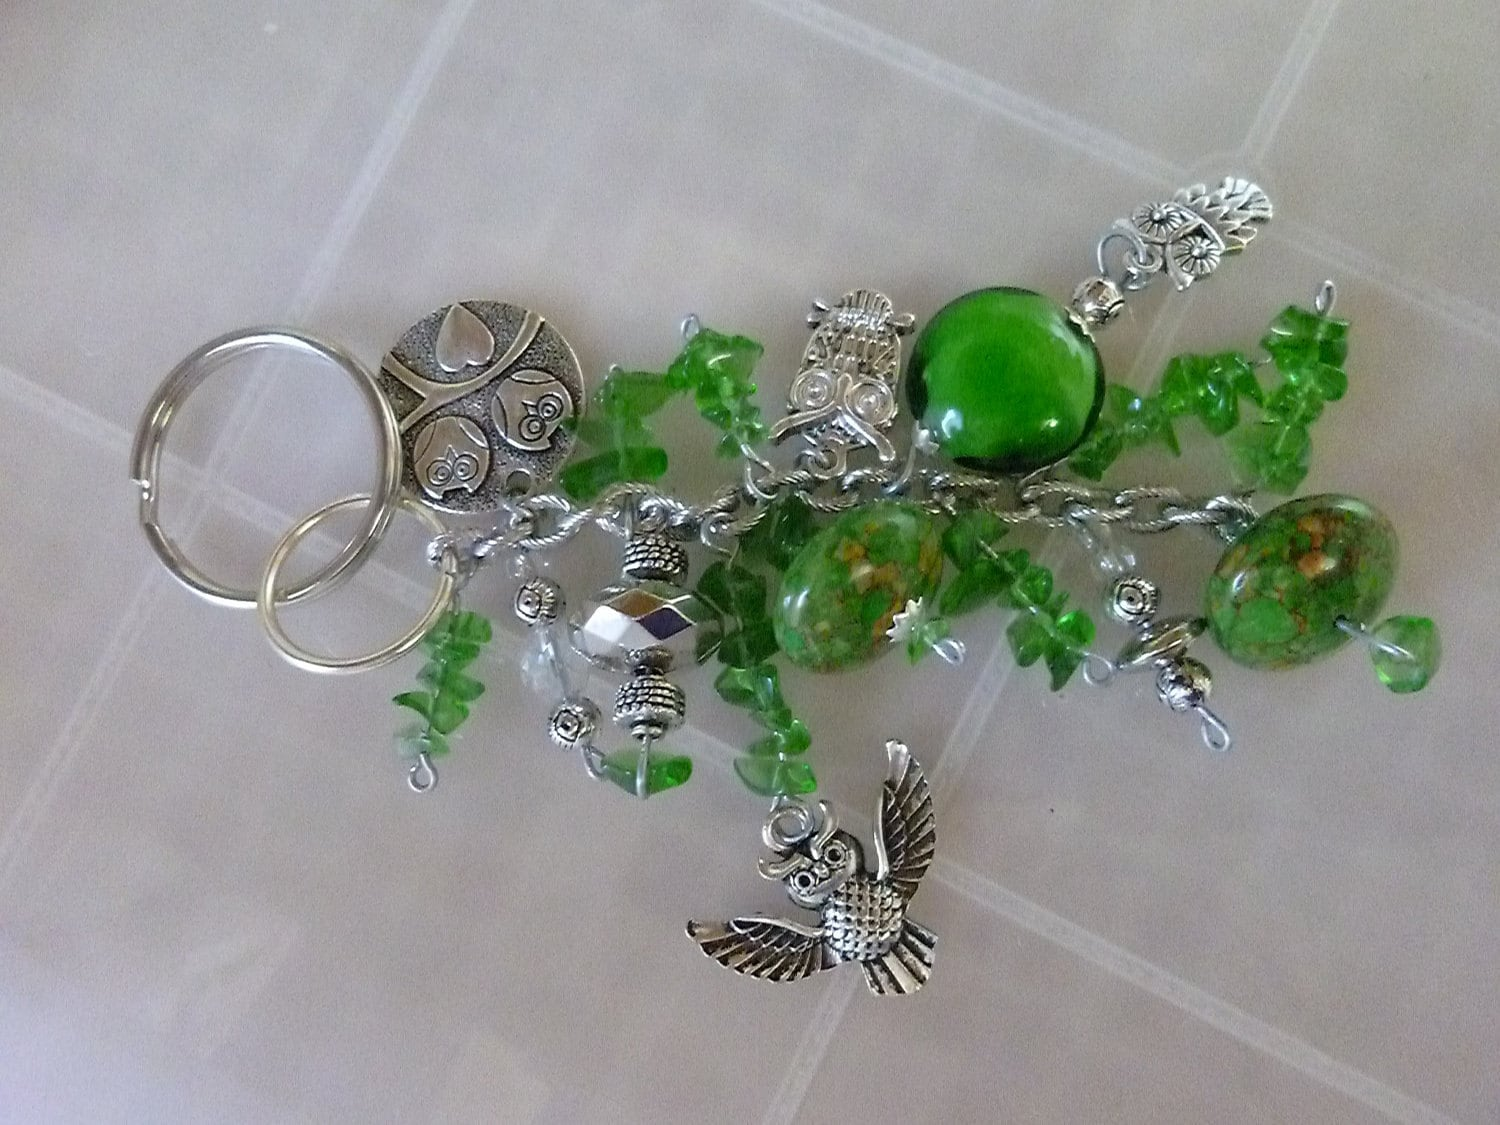 5 inch Owl Chunky Bling Keychain with Metal and Glass Beads - dangle